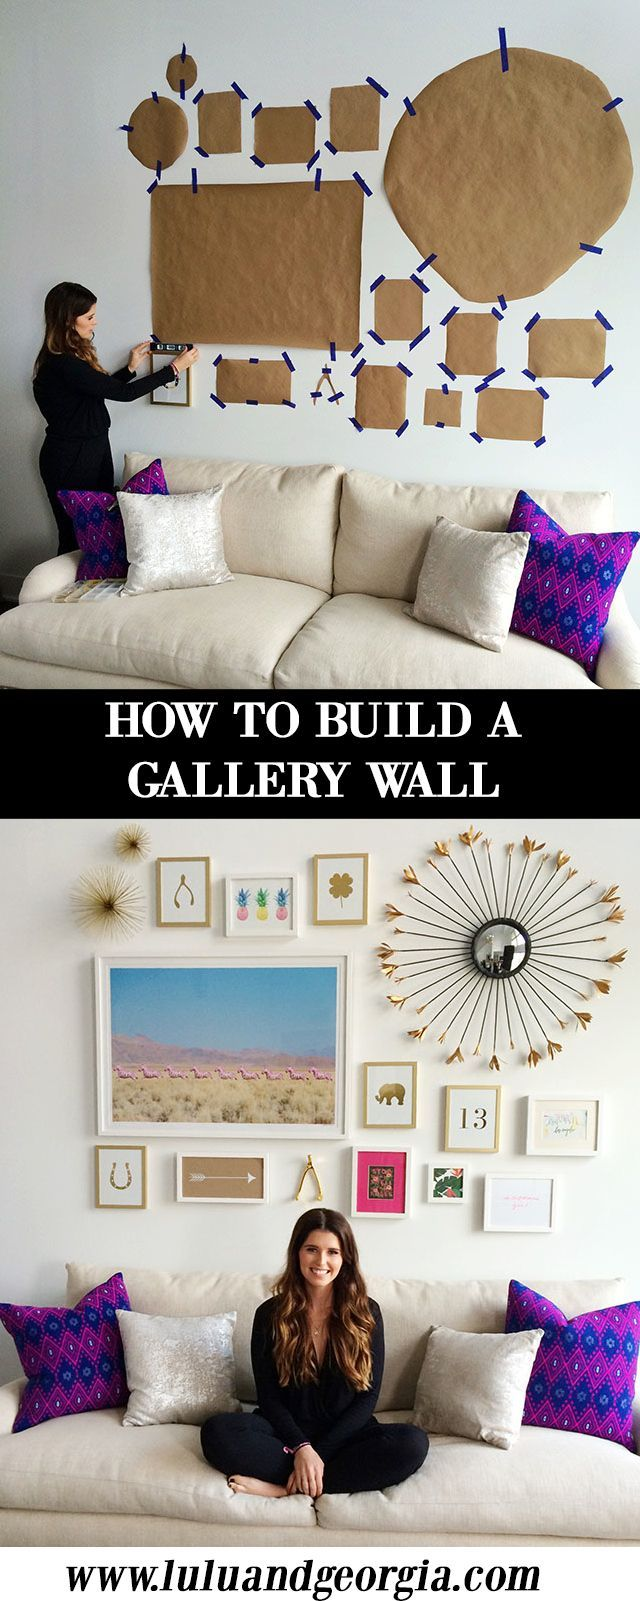 Color of art gallery walls - How To Building A Gallery Wall Choose Larger Pieces As Anchors Choose A Color Scheme Play With Scale Vary The Size And Orientation Of The Art